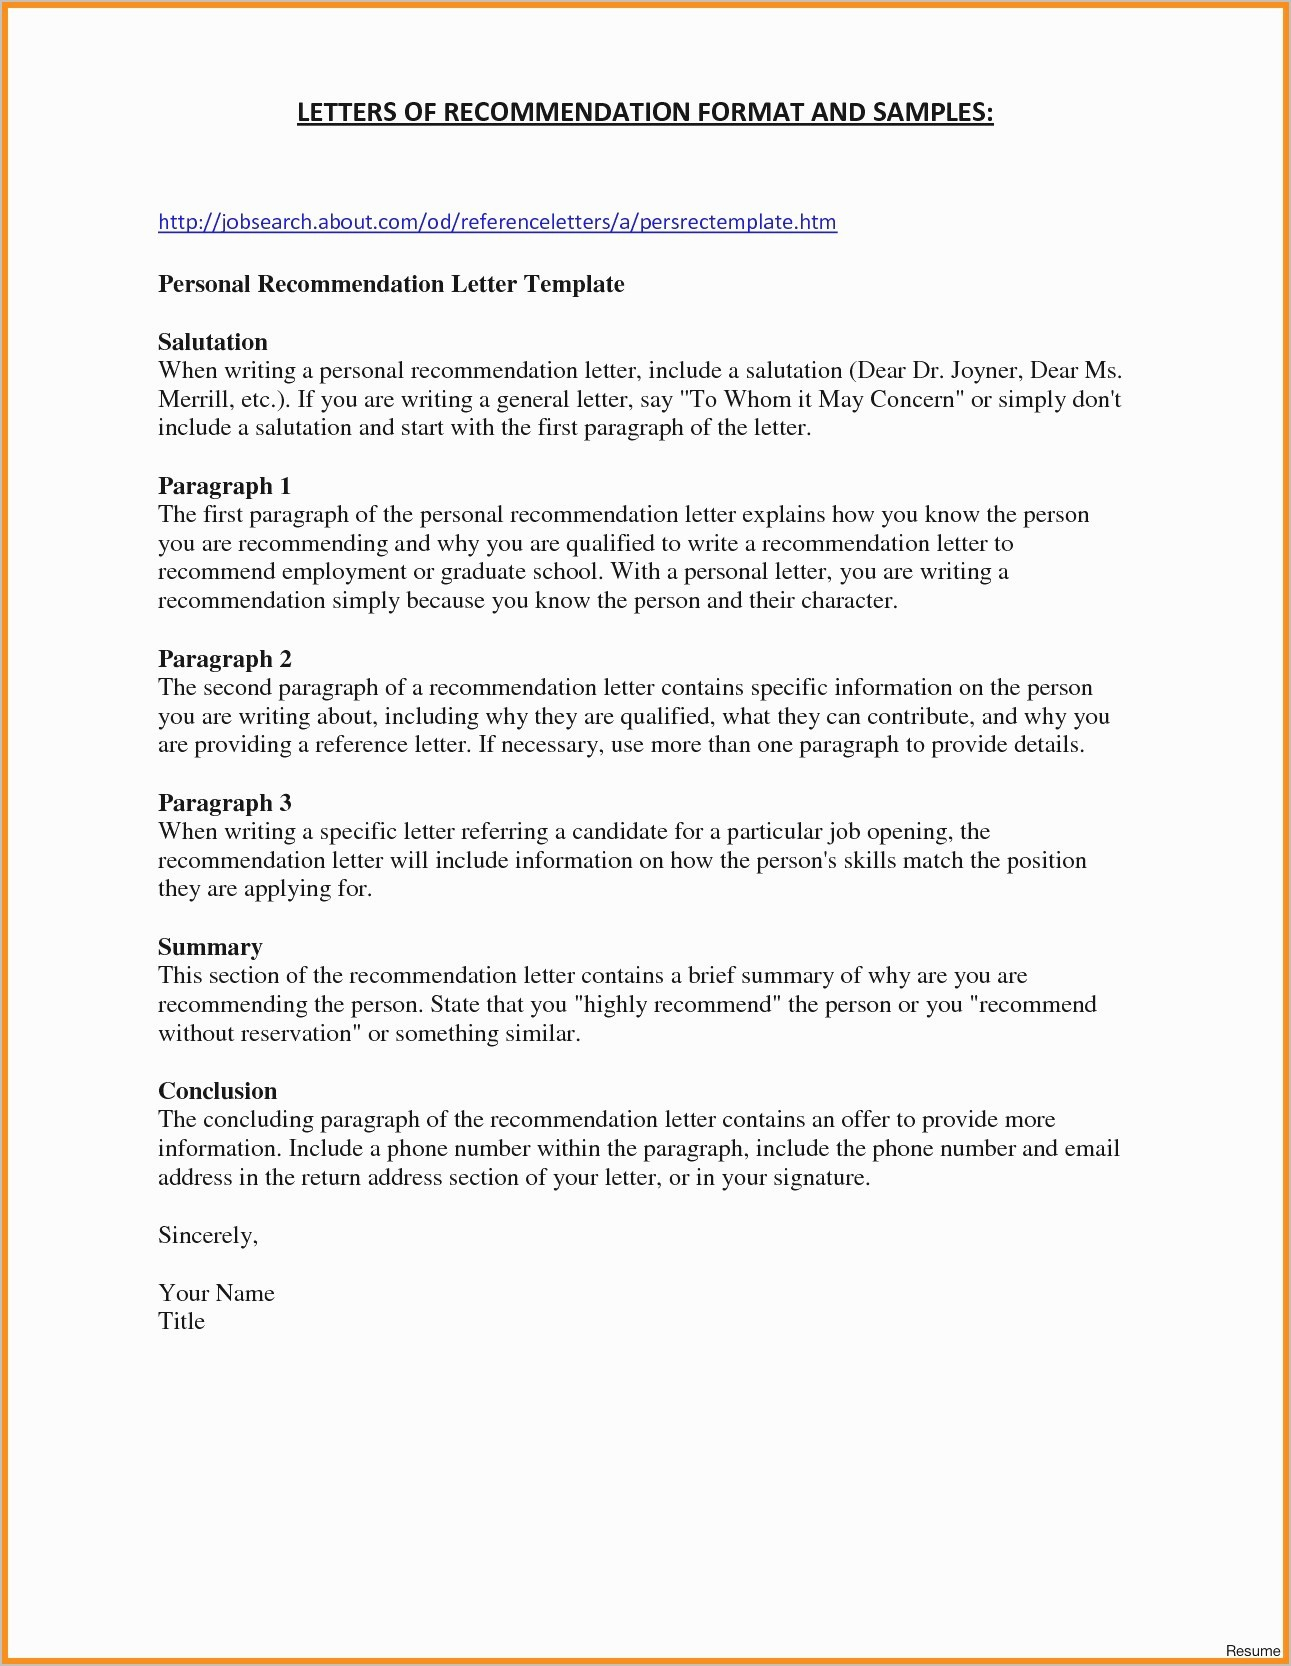 grad school letter of recommendation template letter re mendation for school job inspirationa inspirational